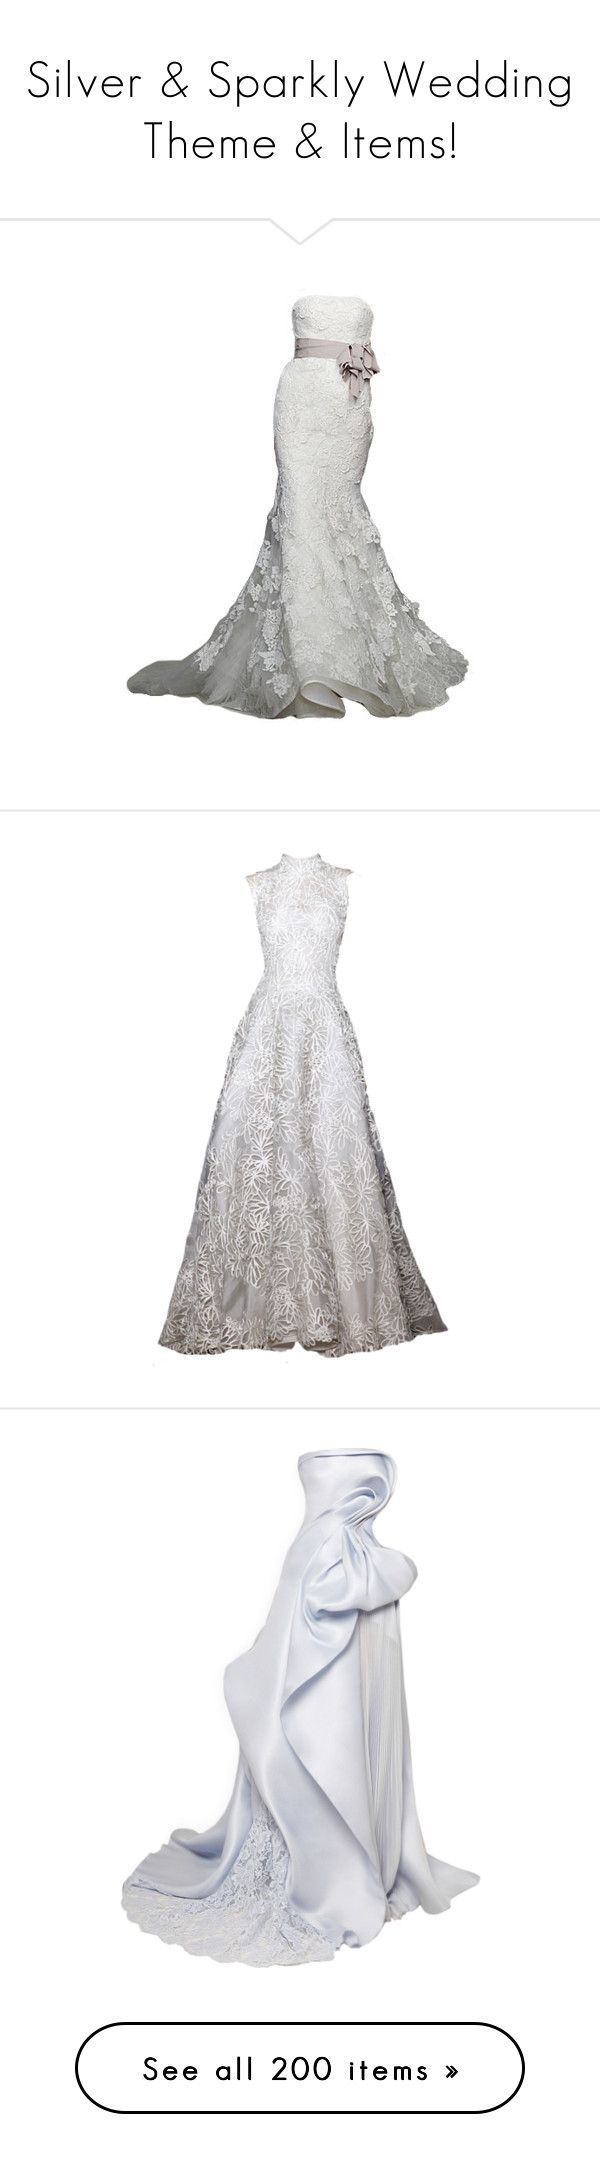 """Silver & Sparkly Wedding Theme & Items!"" by jewelsinthecrown ❤ liked on Polyvore featuring dresses, wedding dresses, gowns, wedding, long dresses, white gown, white evening gowns, white dress, white ball gowns and long dress"